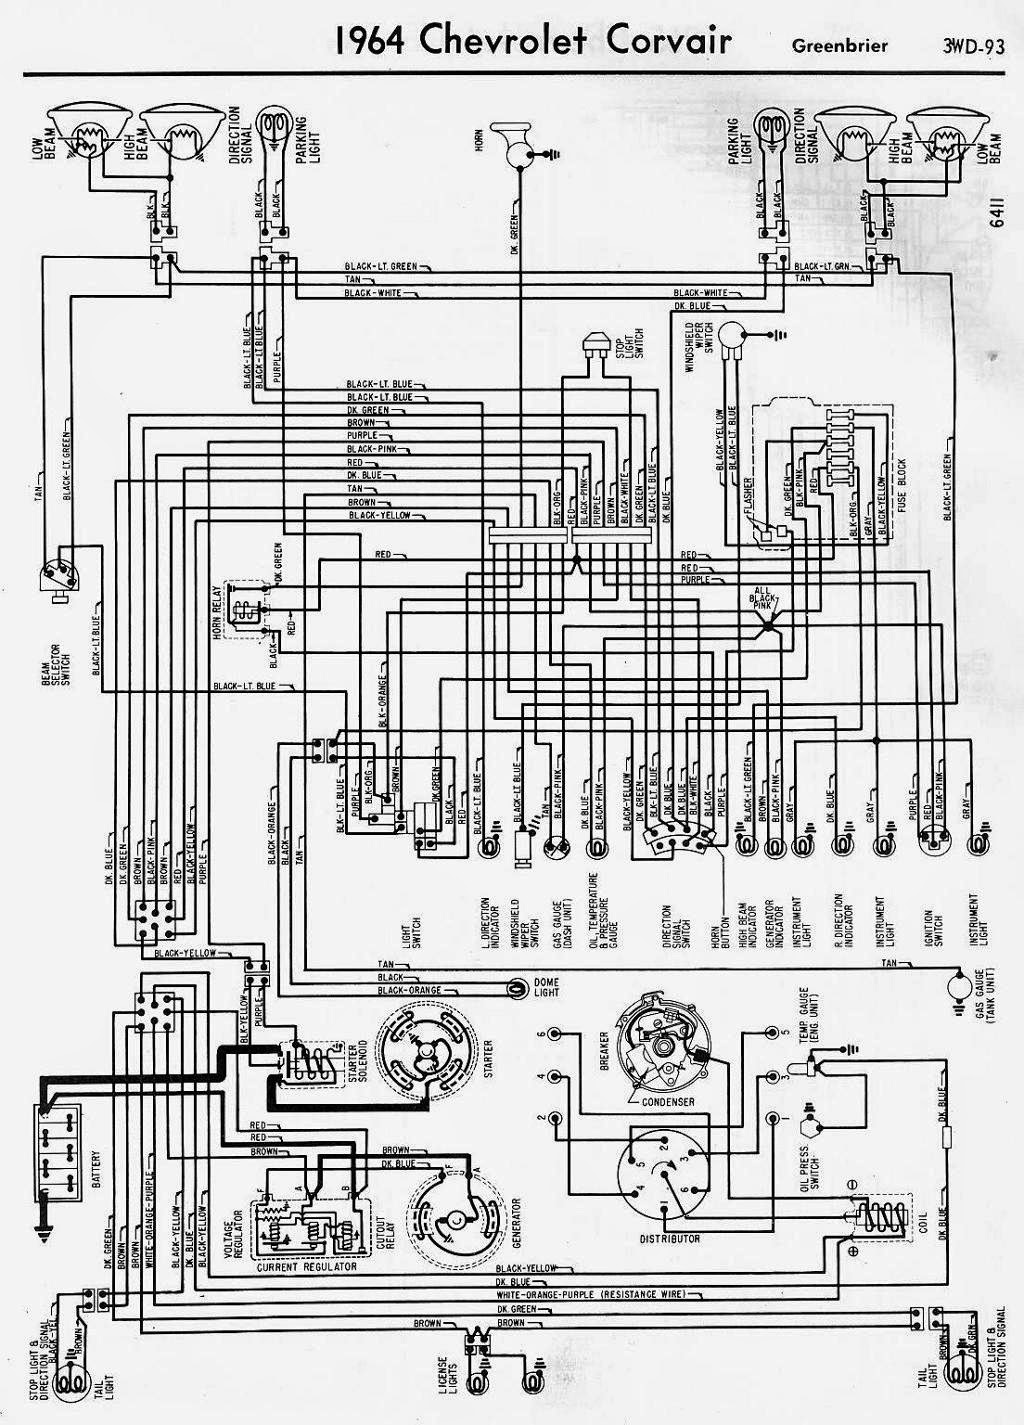 The 1964 Chevrolet Corvair Greenbrier Wiring Diagram